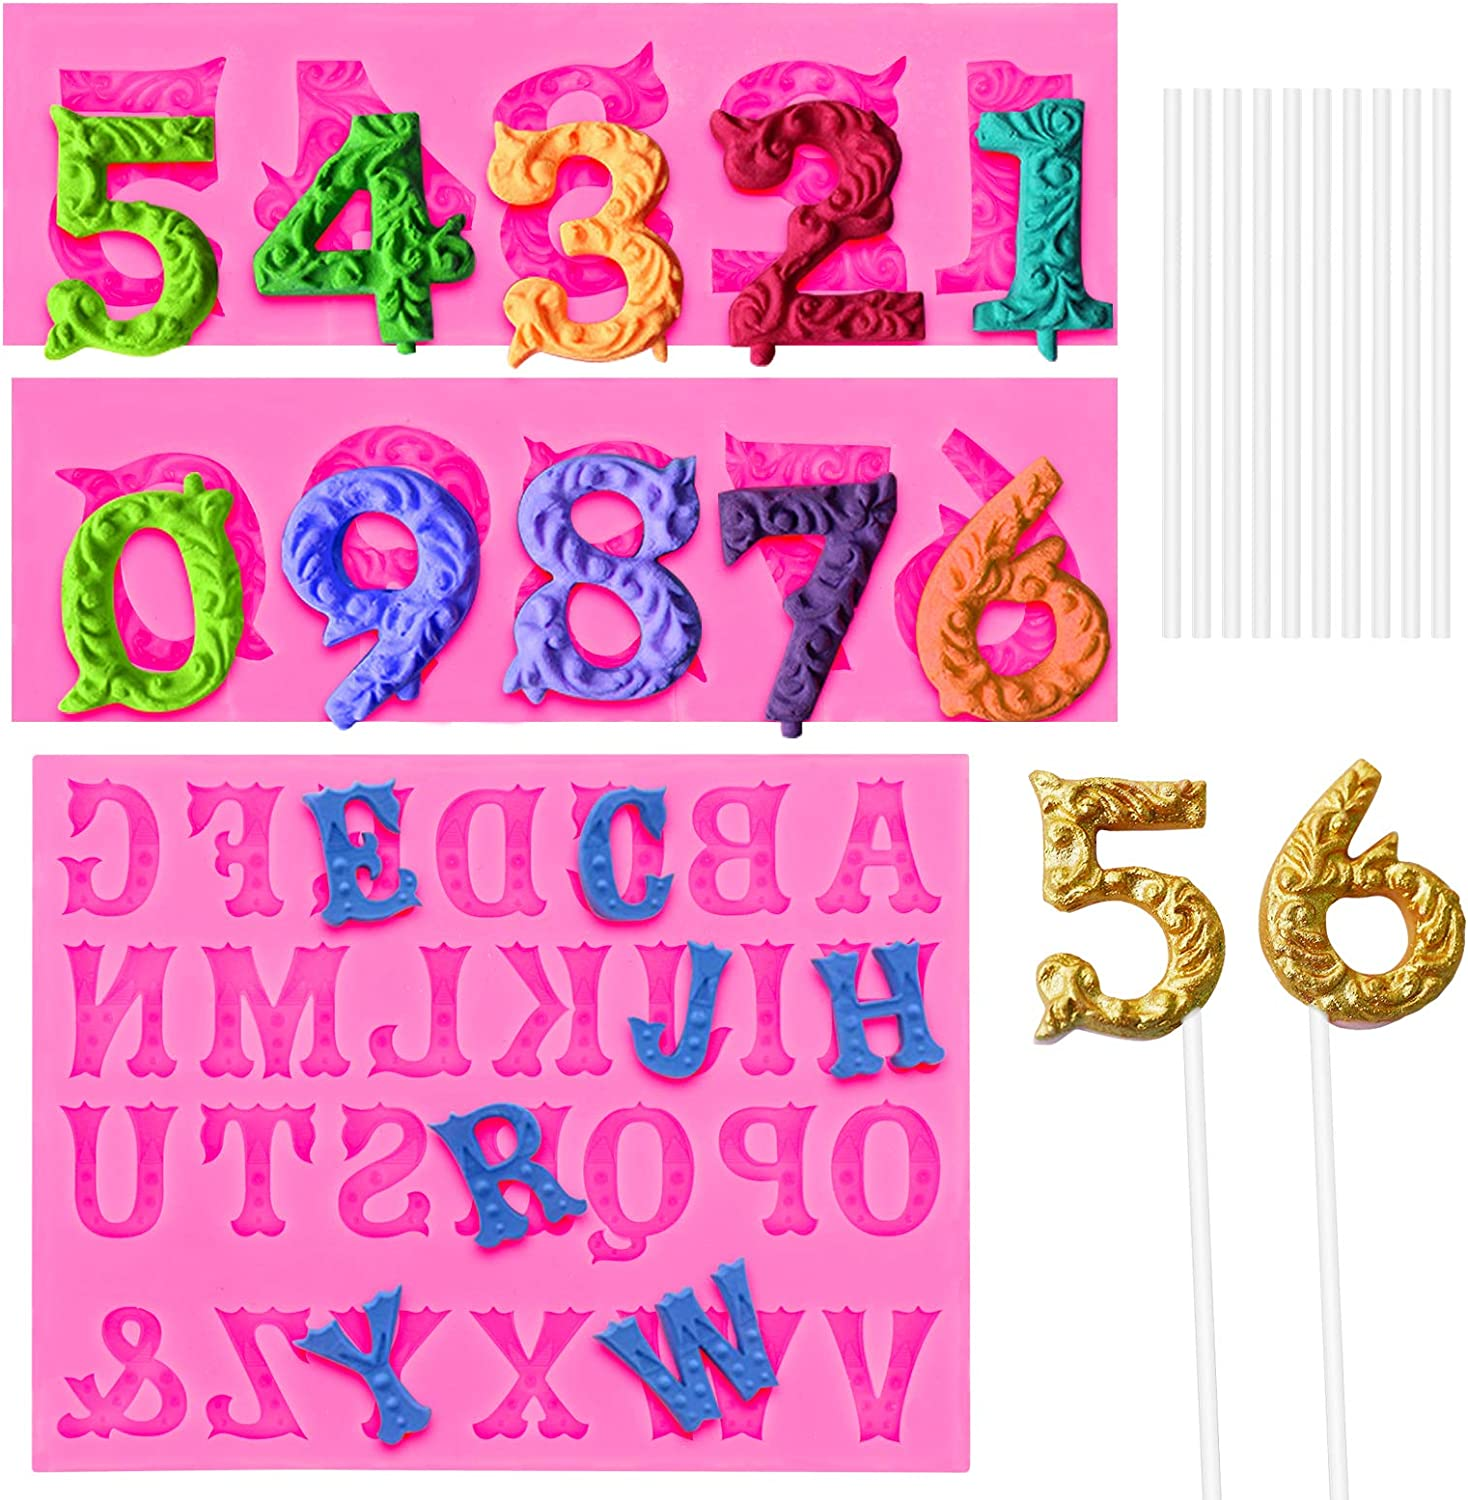 SelfTek Number 0-9 & Alphabet A-Z 3D Silicone Embossed Fondant Mold with 10Pcs Lollipop Sticks Candy Number Mold Letter Chocolate Mold Cake Decoration Tools for Birthday Party, Anniversary